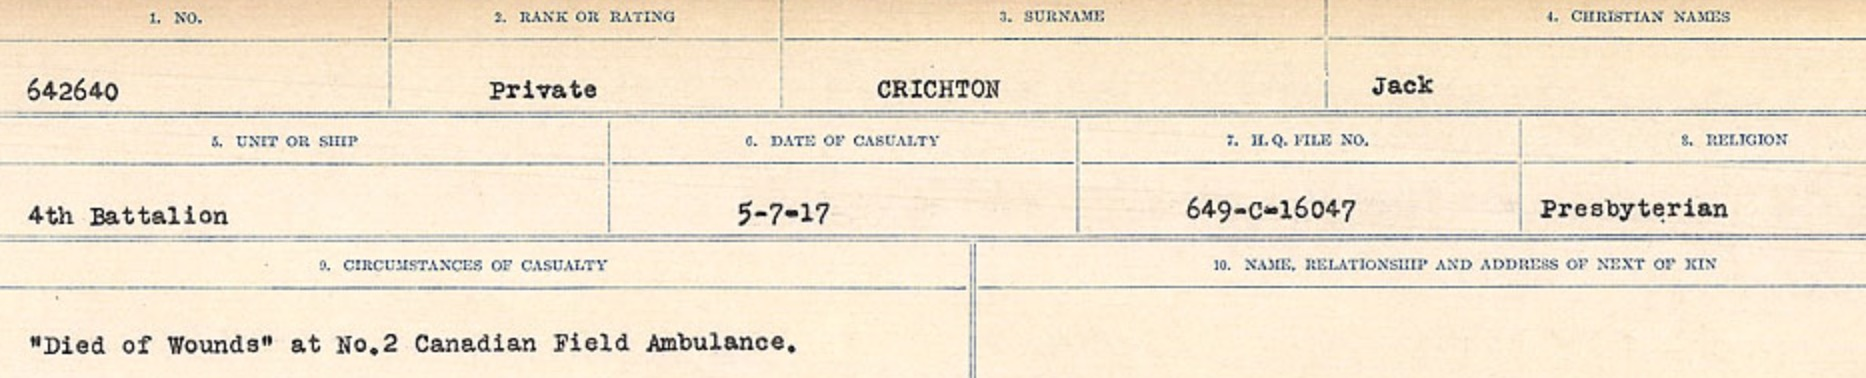 Circumstances of death registers– Source: Library and Archives Canada. CIRCUMSTANCES OF DEATH REGISTERS, FIRST WORLD WAR Surnames: CRABB TO CROSSLAND Microform Sequence 24; Volume Number 31829_B016733. Reference RG150, 1992-93/314, 168. Page 511 of 788.